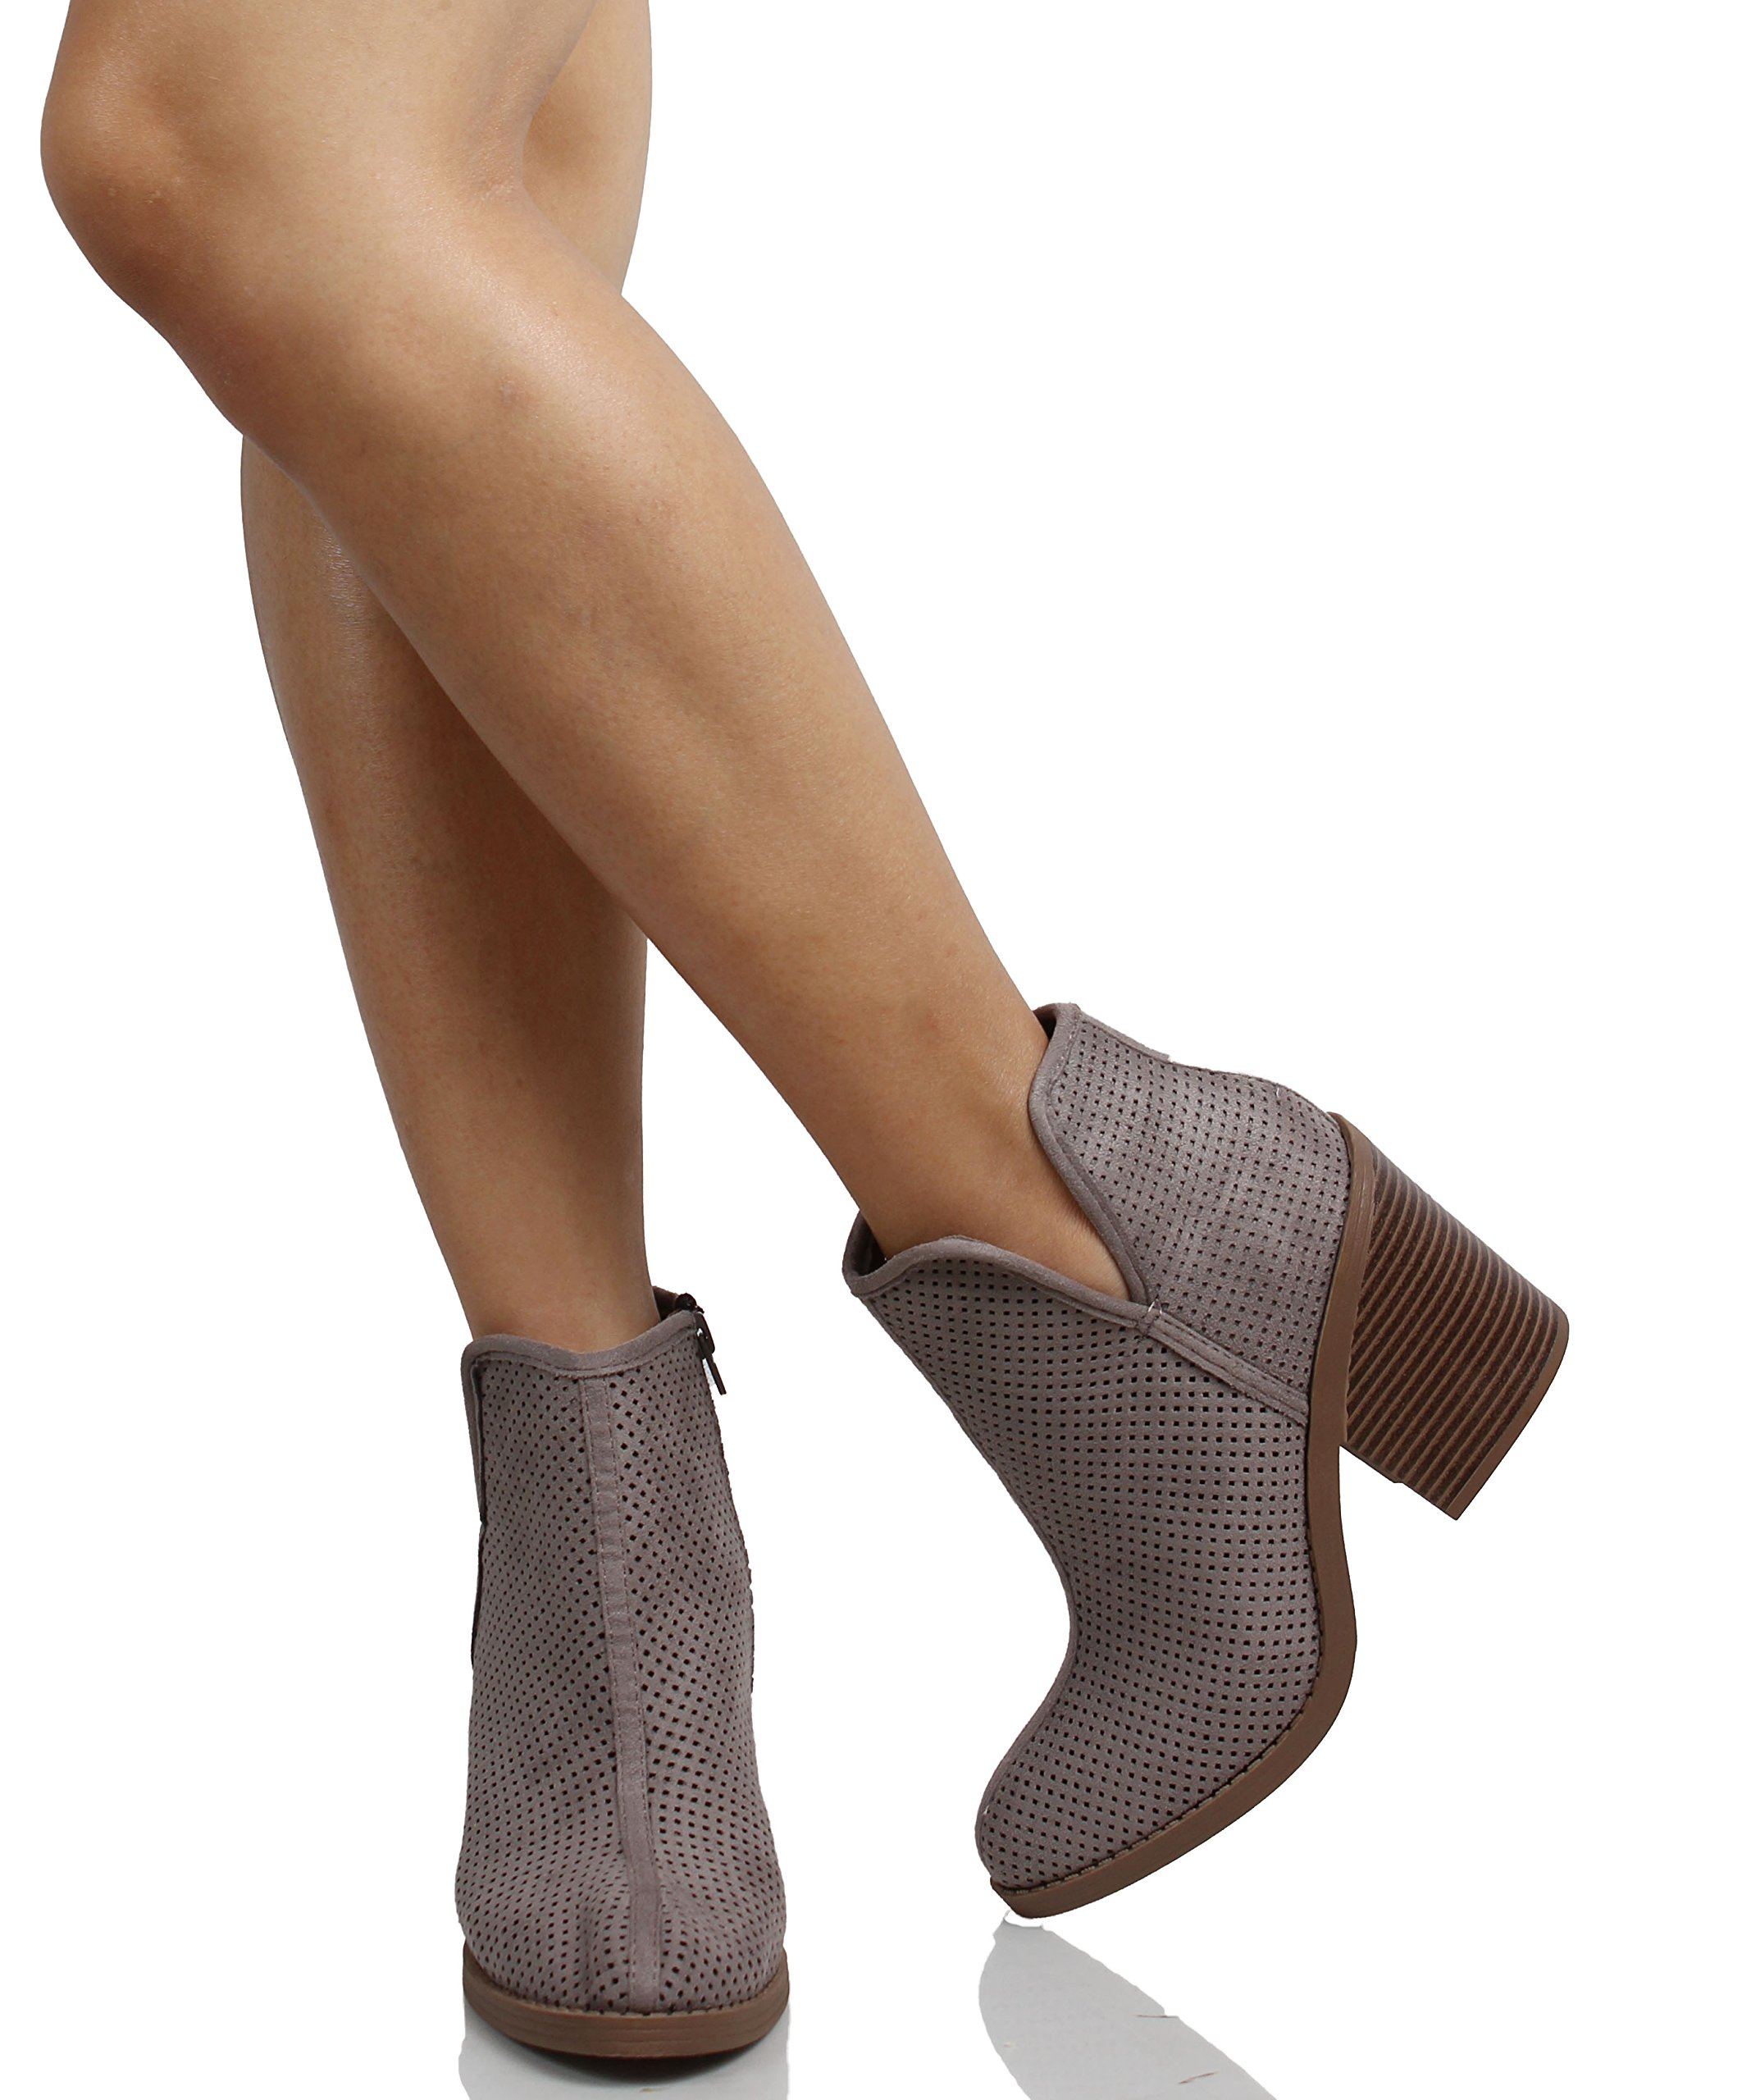 adfa6ffcd MVE Shoes - SodaWomens Tarpon Perforated Stacked Block Heel Ankle Bootie  (Soft Grey, 7.5 B(M) US) - Walmart.com